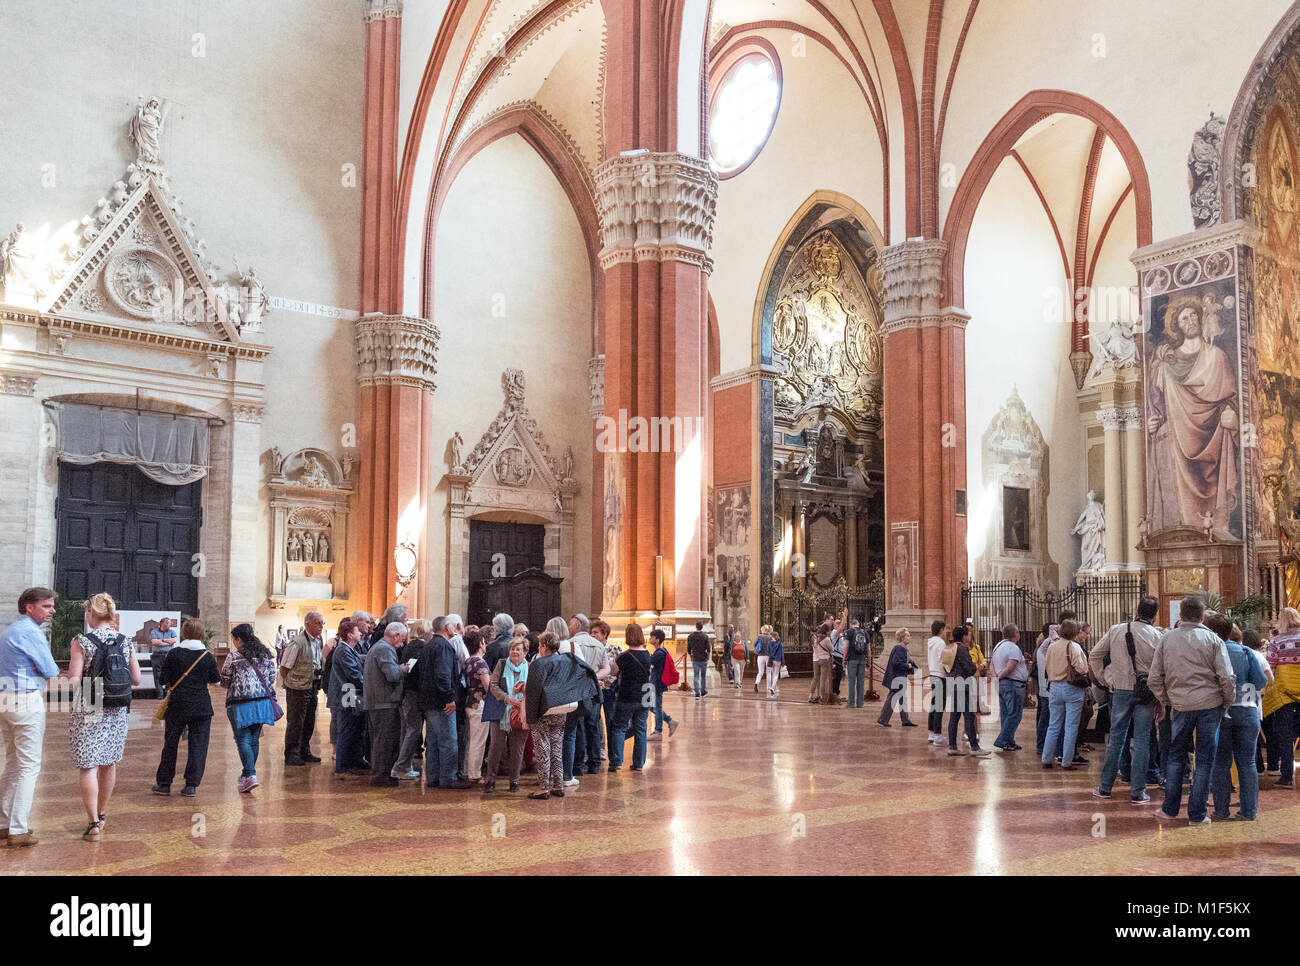 bologna italy a croud of visitors in the st petronio basilica